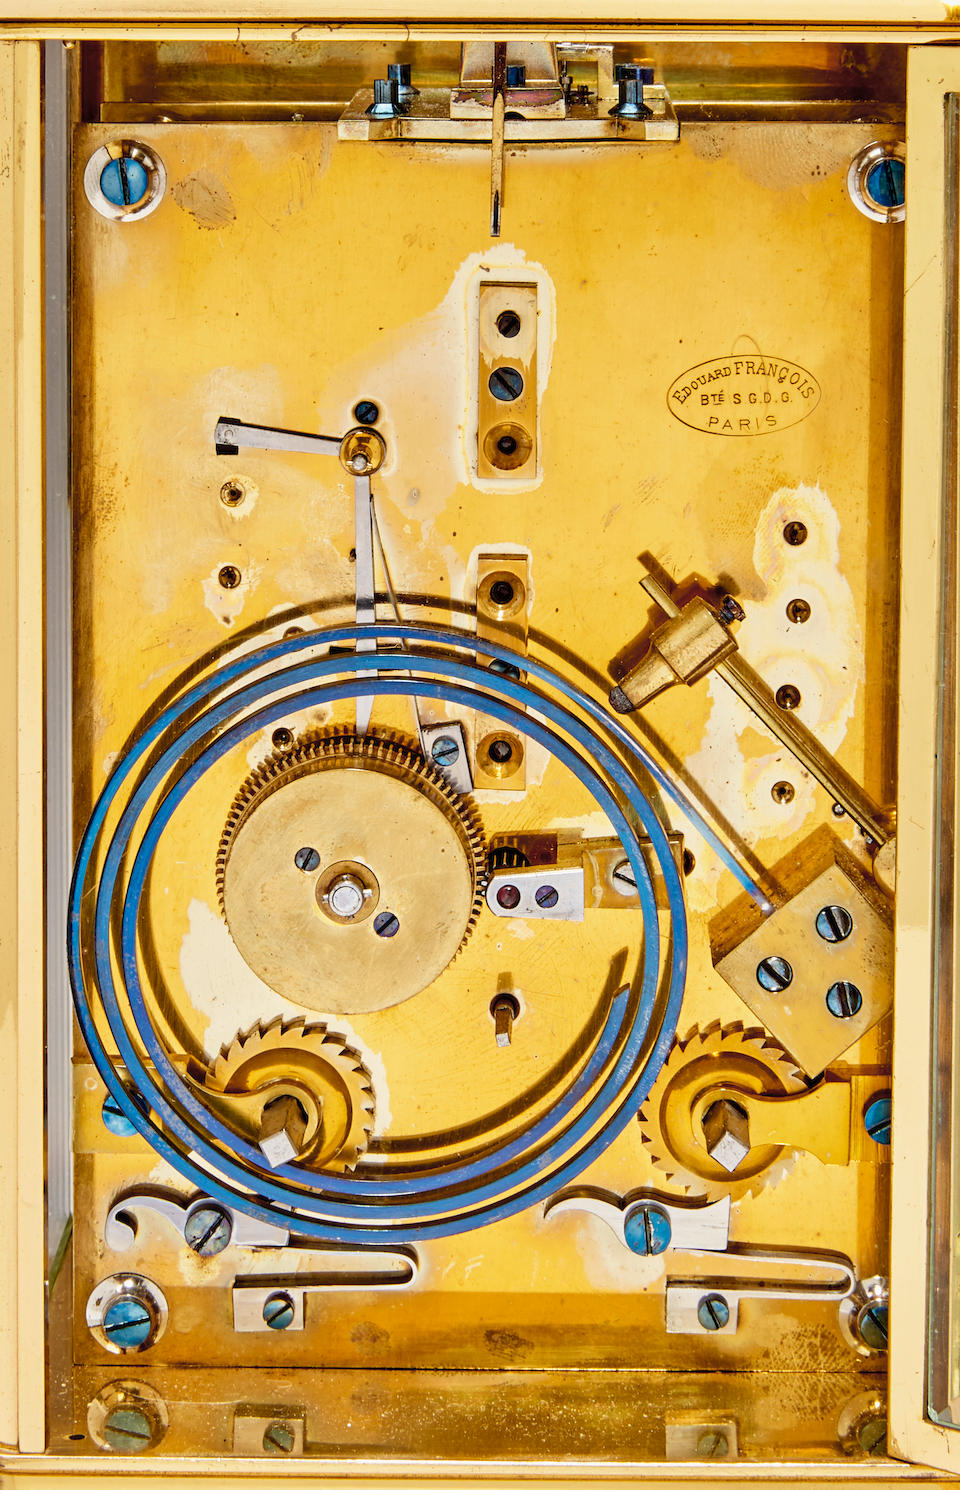 A fine and very rare giant chronometer carriage clock with patent remontoire, power reserve indication and running secondsSigned Edouard François, Paris, No. 3 Late 19th century